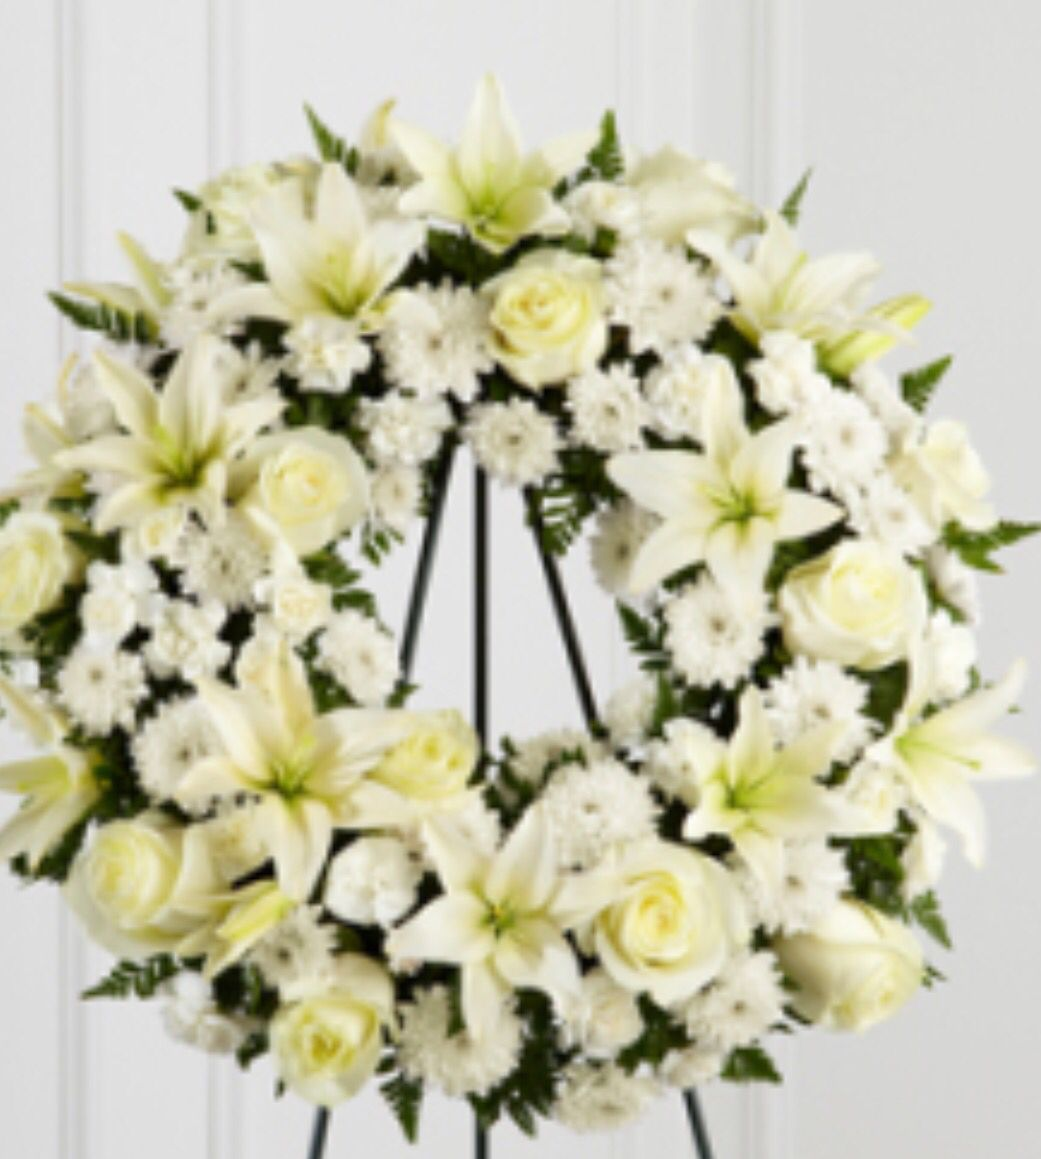 Pin by camps on fleurs blanches papillon pinterest the ftd treasured tribute wreath offers peaceful wishes of heartfelt sympathy with each delicate bloom bright white roses asiatic lilies izmirmasajfo